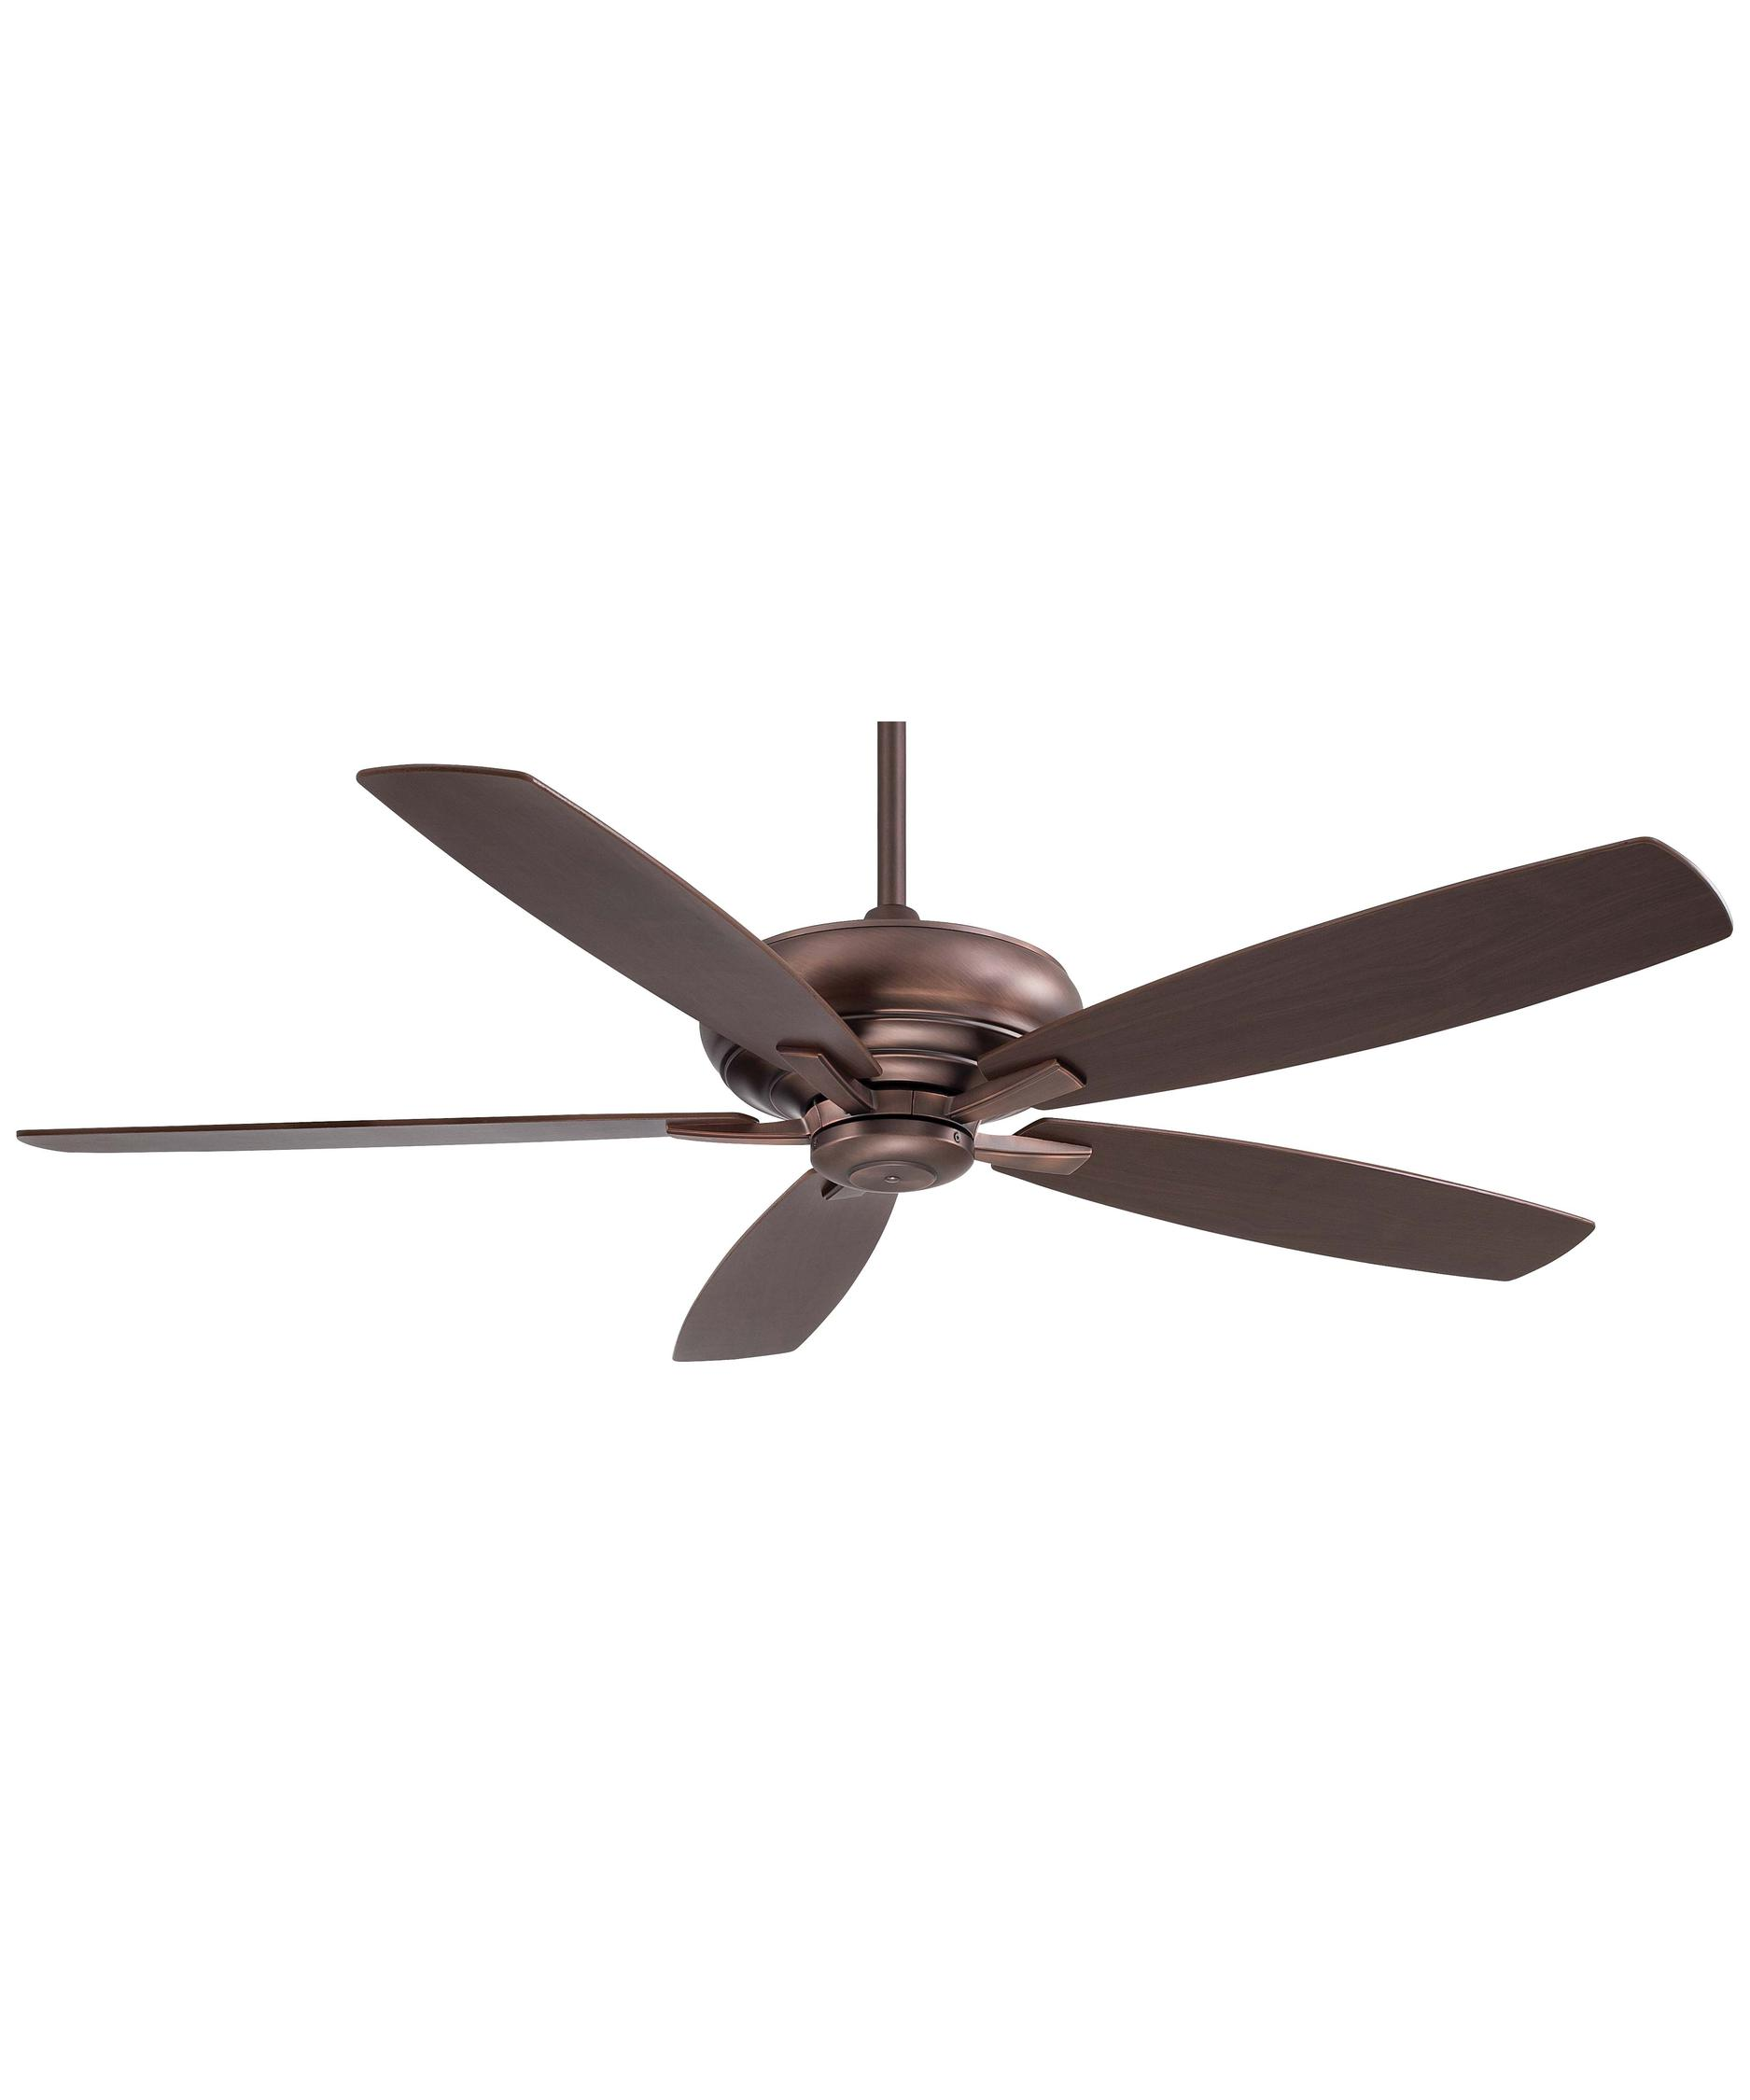 72 Inch Ceiling Fan Price Cheap Craftmade Cf 100 Ceiling